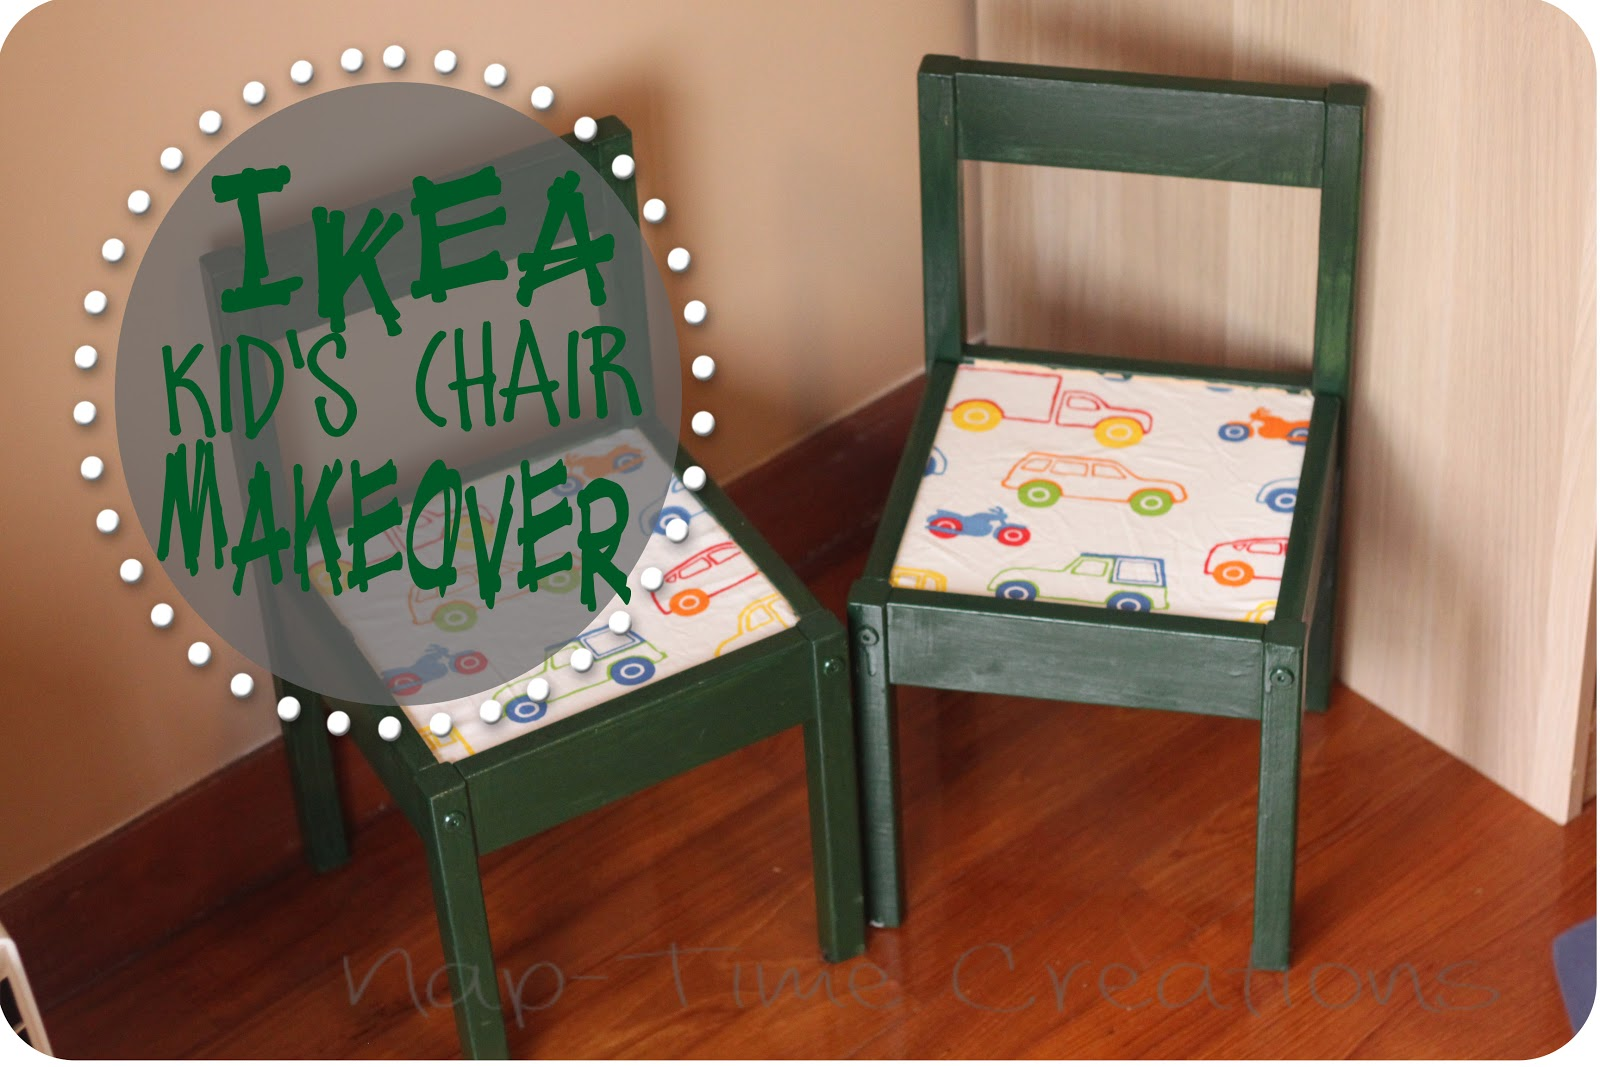 IKEA kids chair & IKEA Kidu0027s Chair Makeover! A little DIY Project! - Life Sew Savory